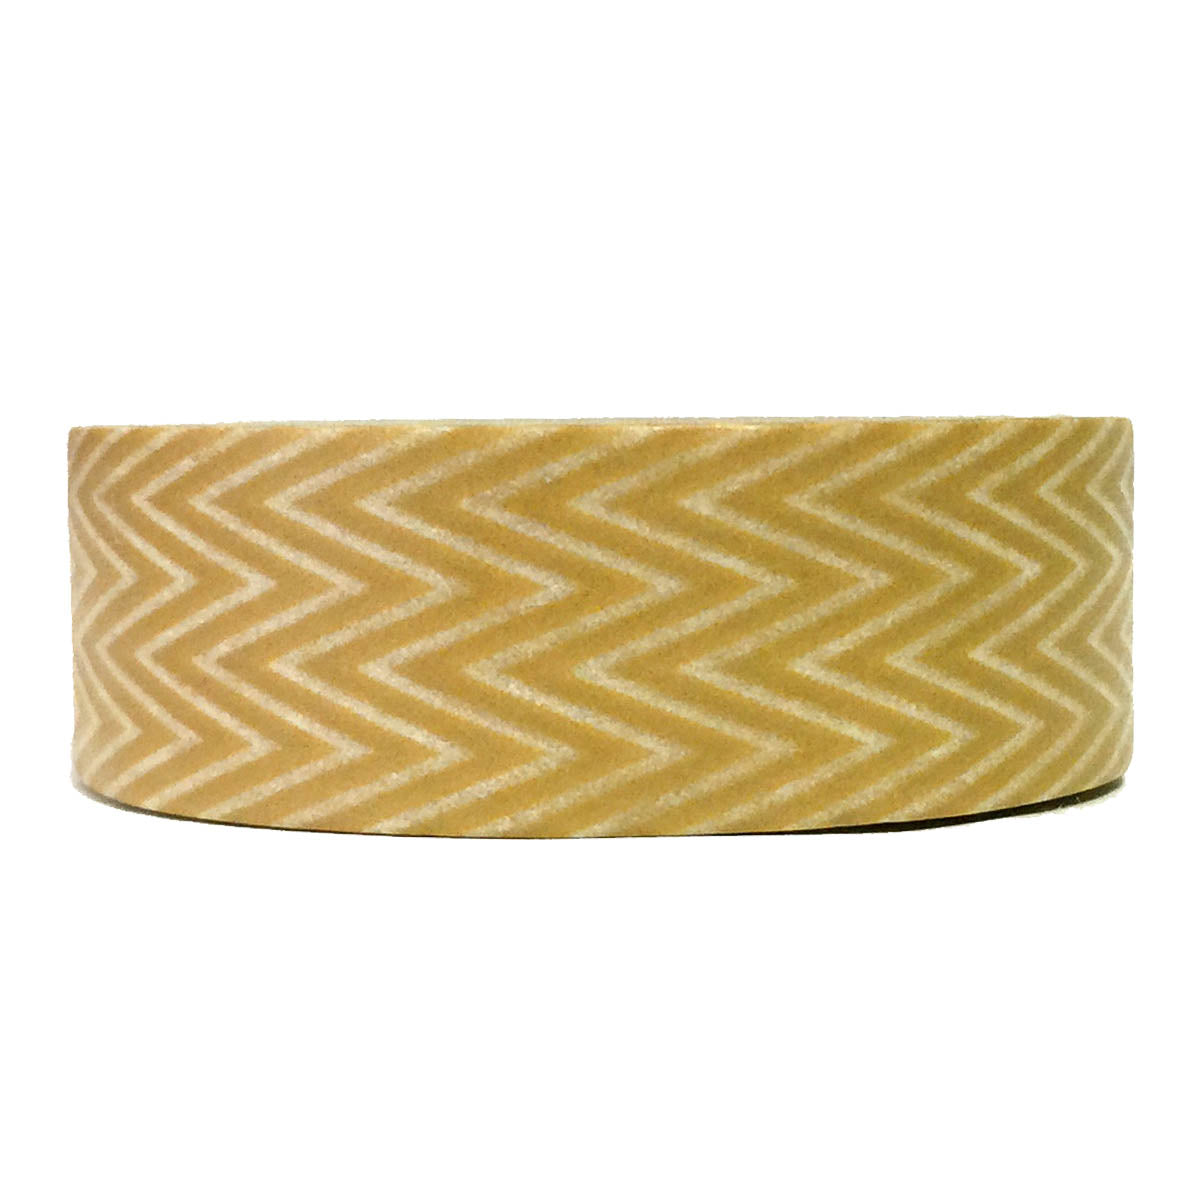 Wrapables Washi Masking Tape, Sweet and Shimmery Group